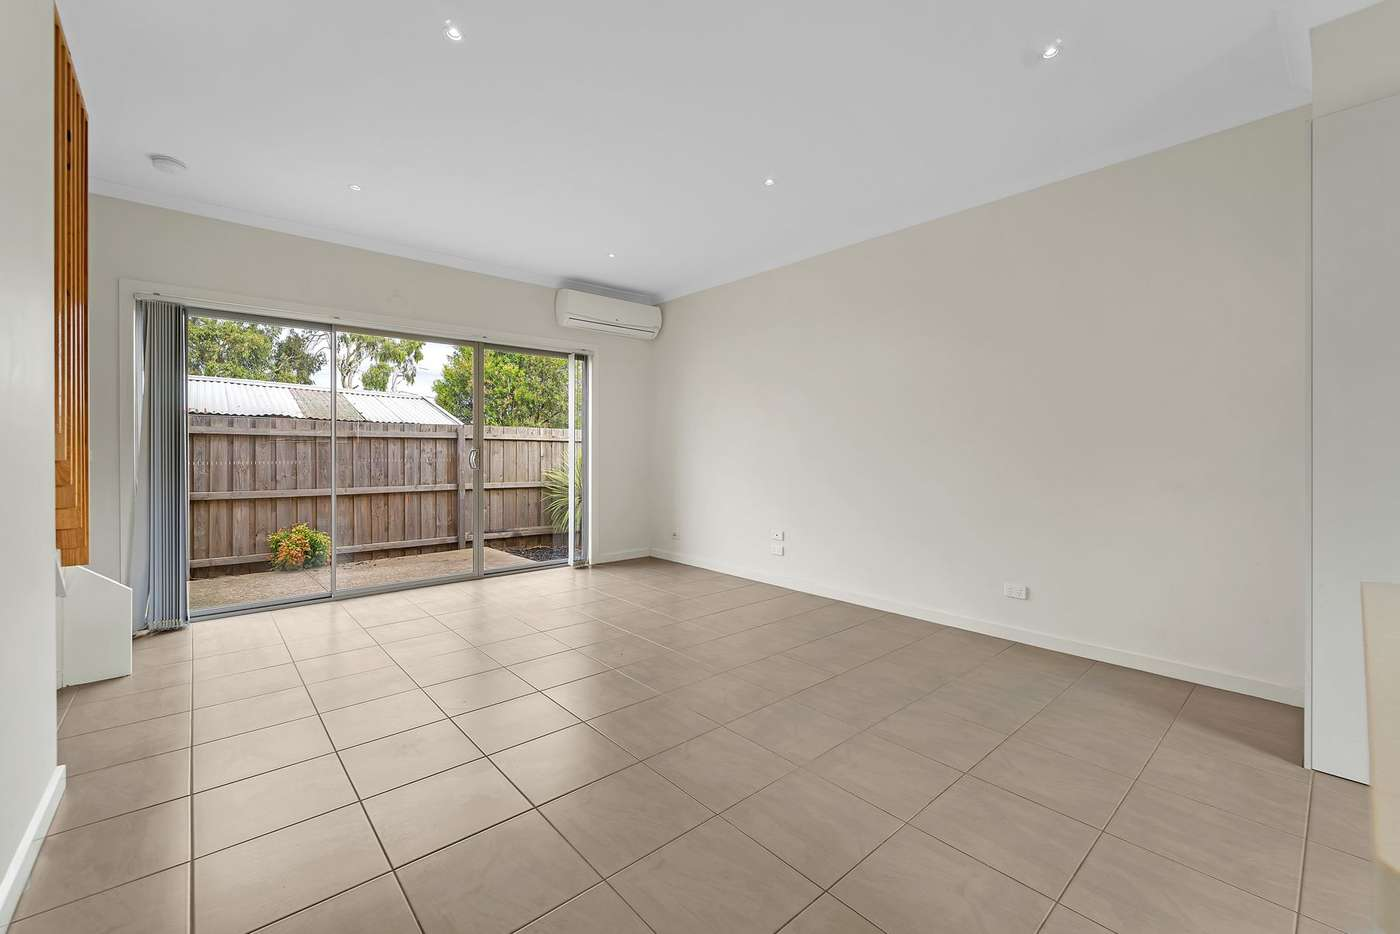 Sixth view of Homely townhouse listing, 3/7 Martell Street, Broadmeadows VIC 3047